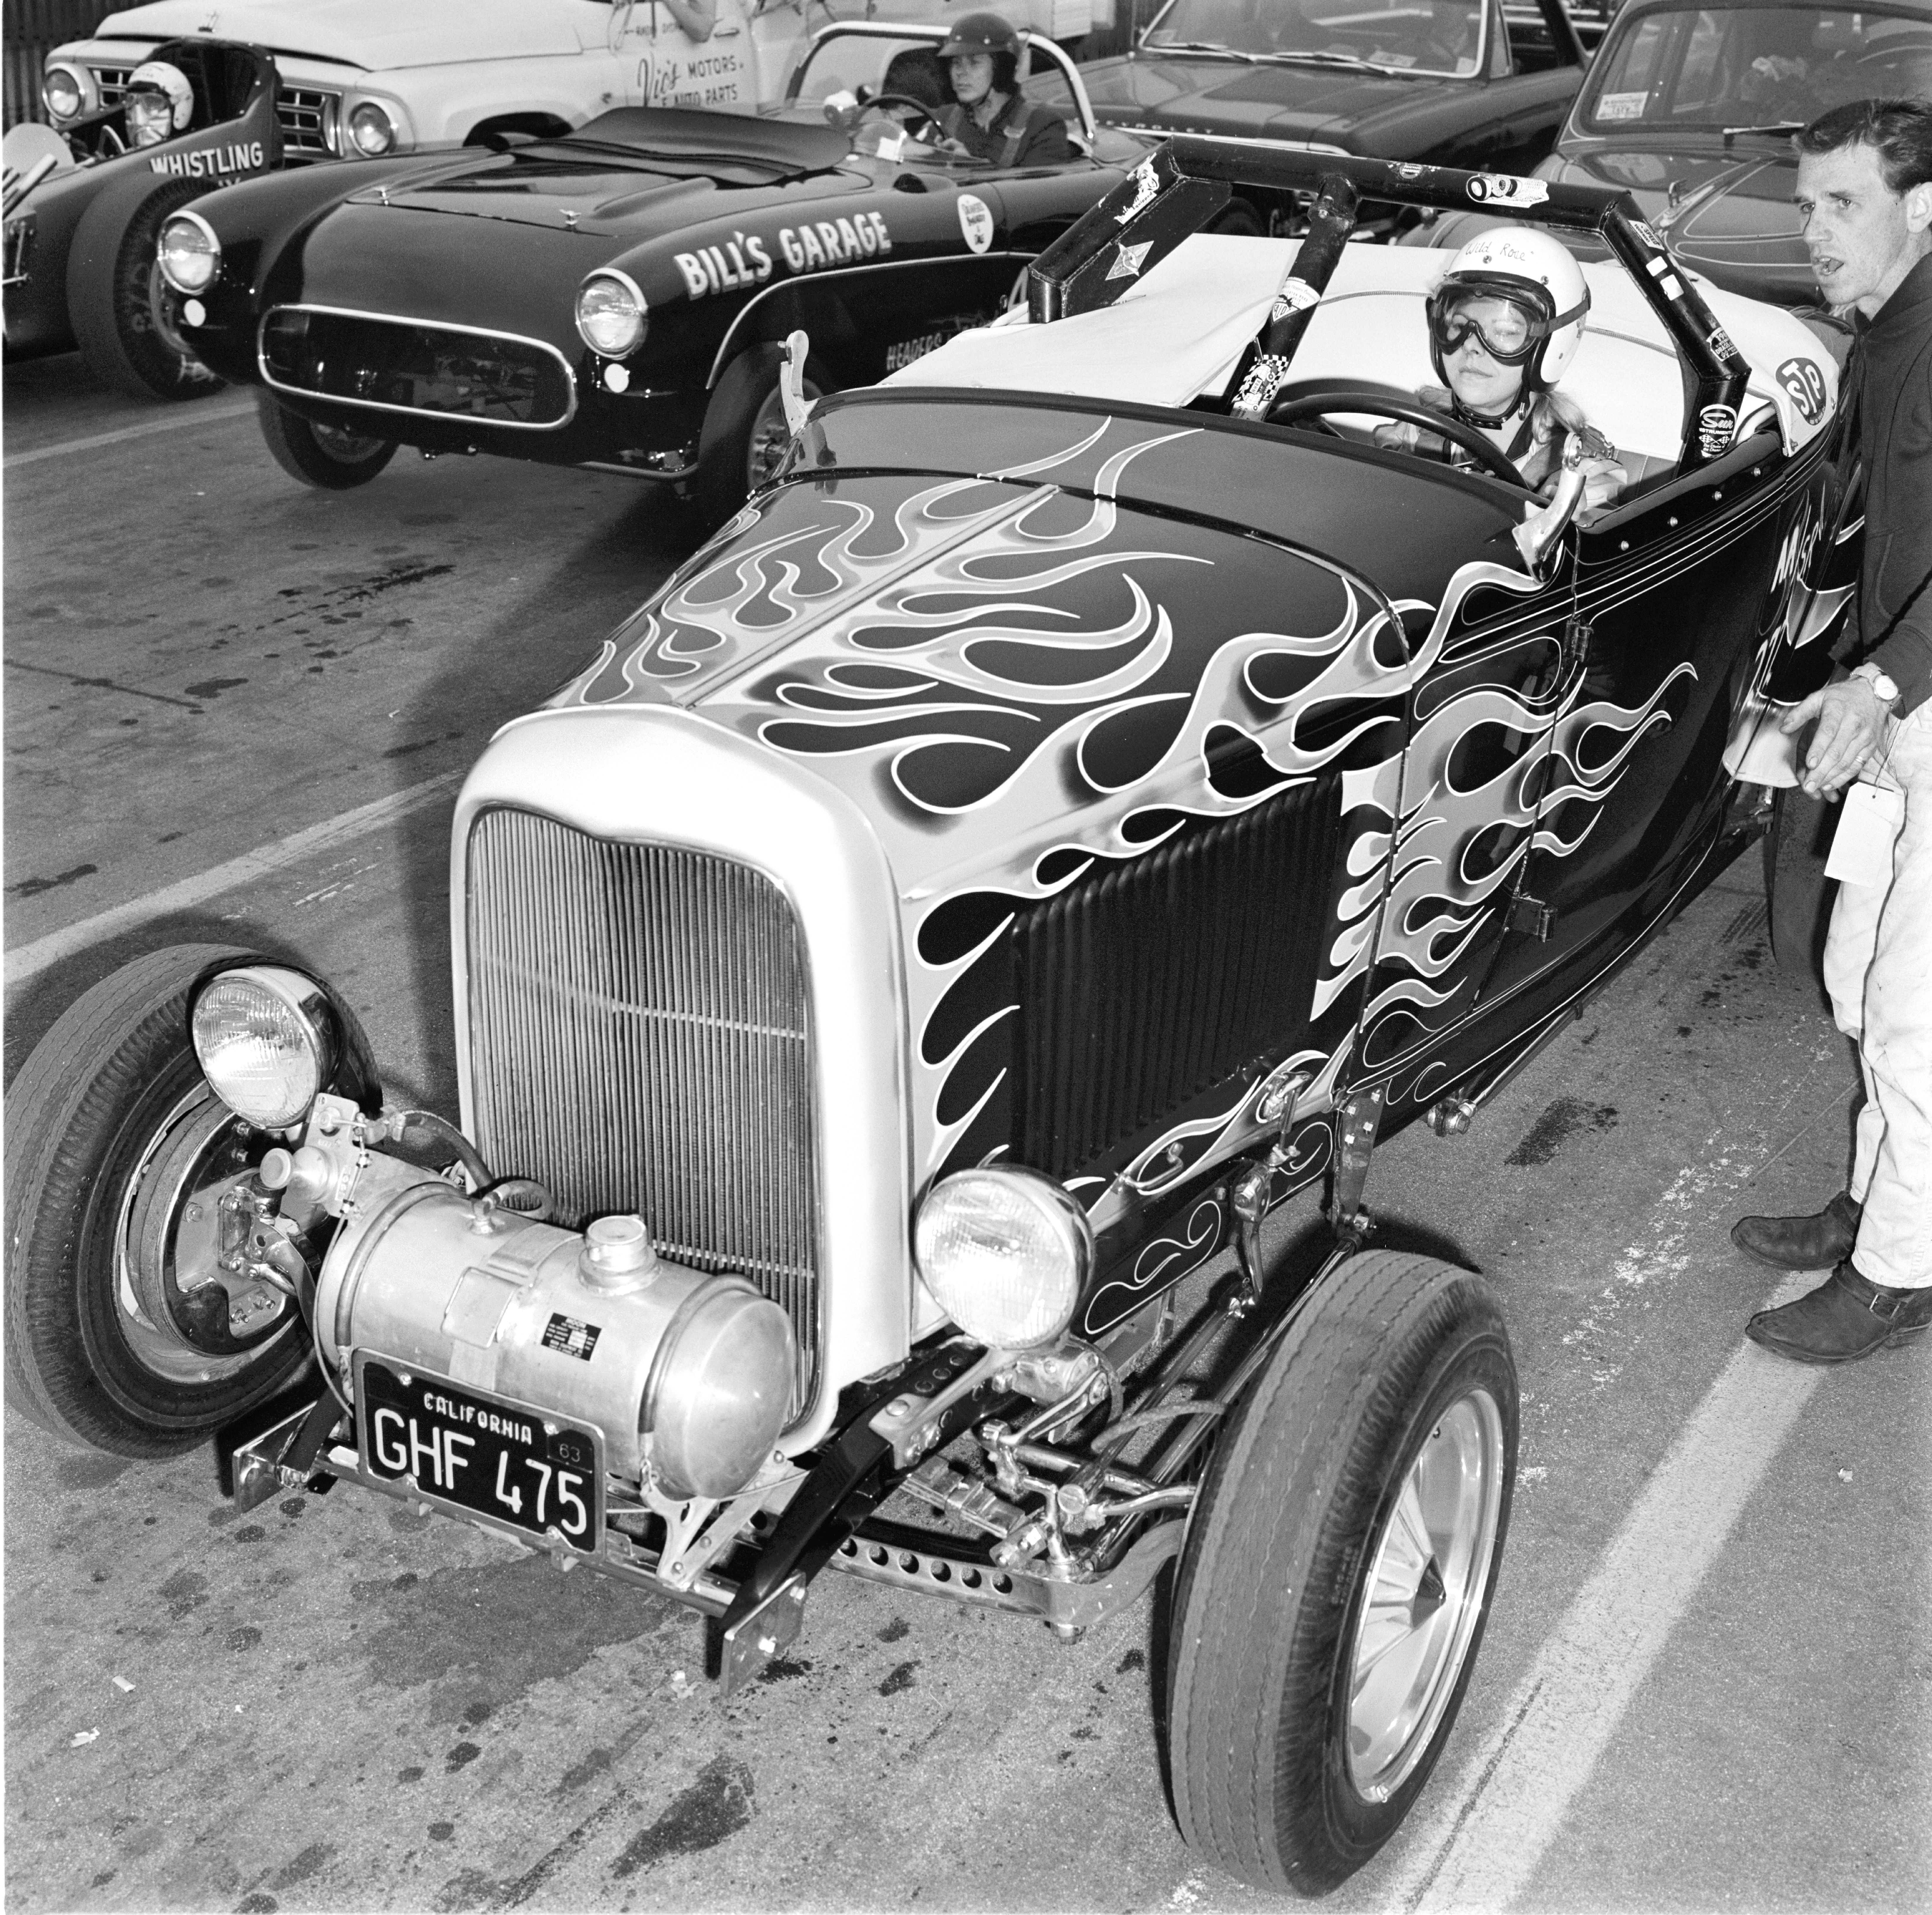 """Wild"" Rose Gennuso's 13.63/100.80 Pomona trophy dash clinched AA/Street Roadster glory in the Deuce of future husband Tom McMullen, also pictured. (Another female racer, Judy Lilly, topped B/Sport in a Corvette.)"